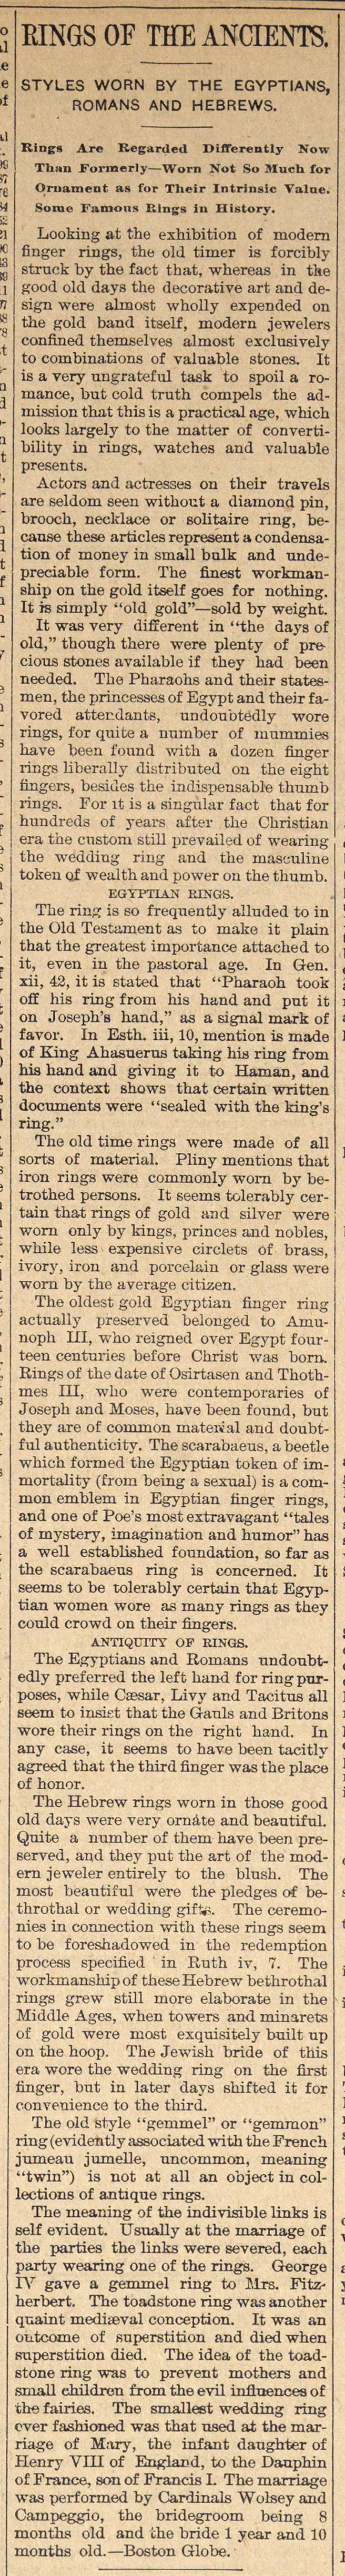 Rings Of The Ancients image